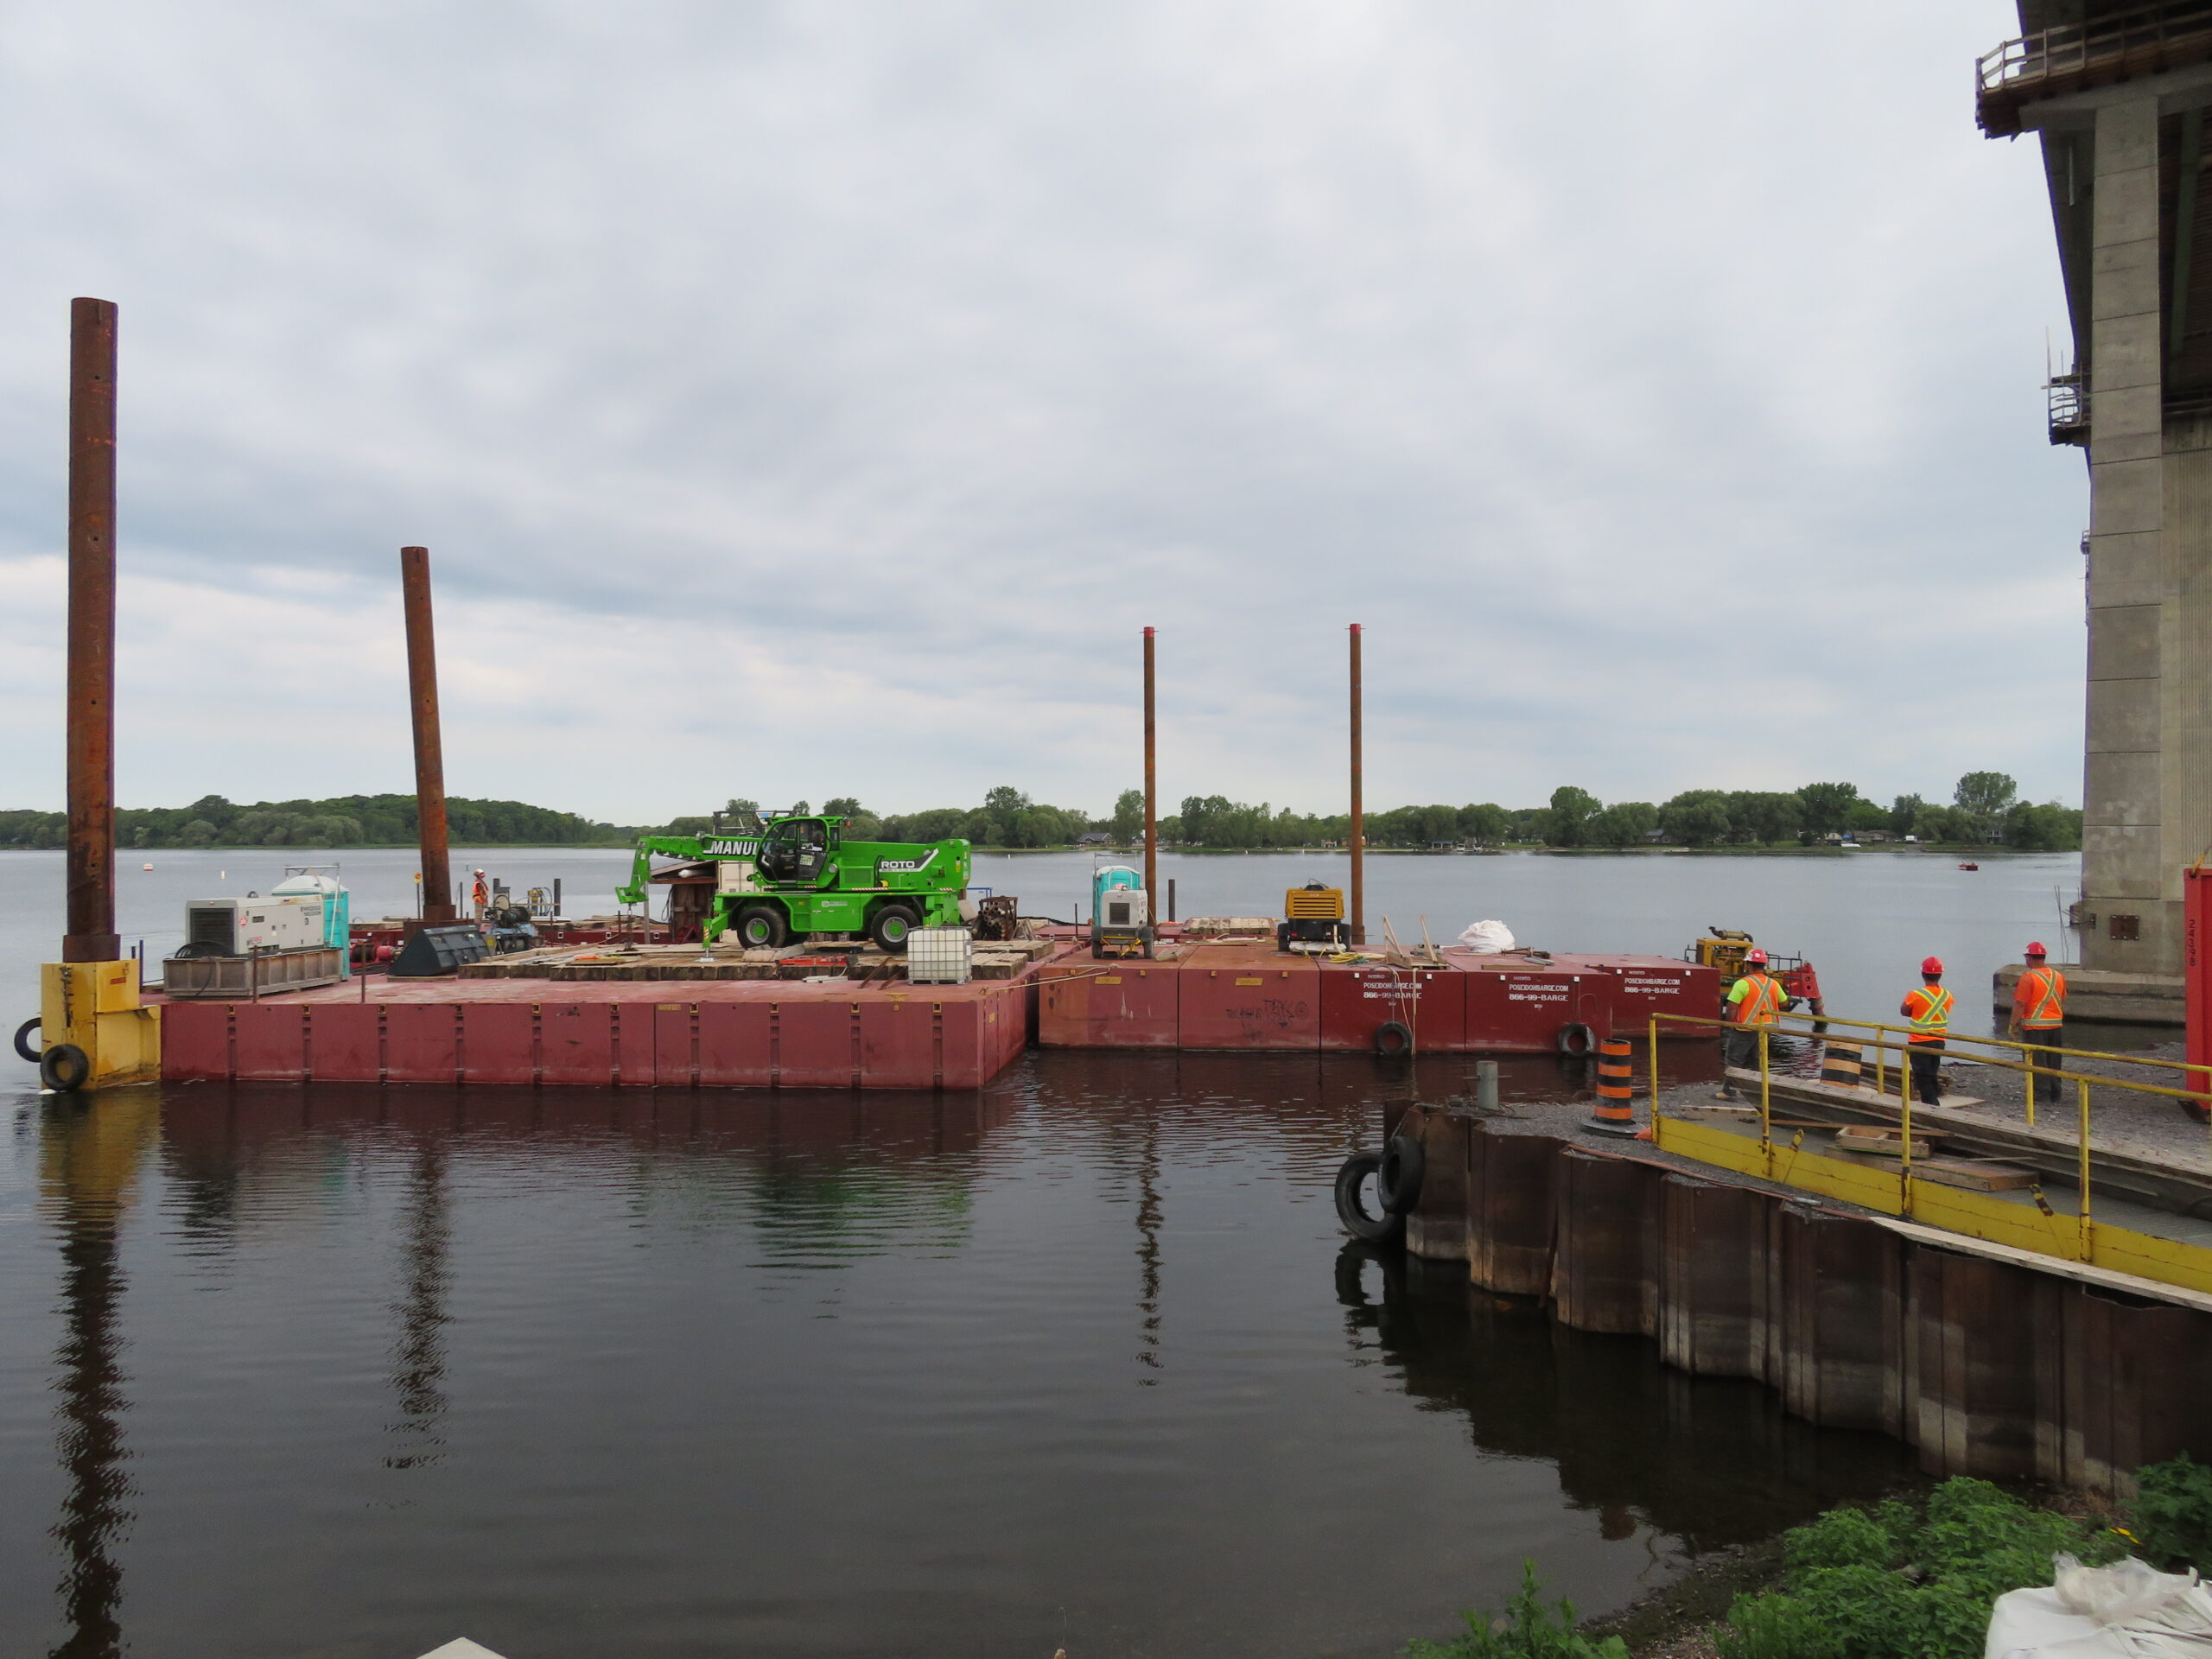 Bringing the barges into the dock